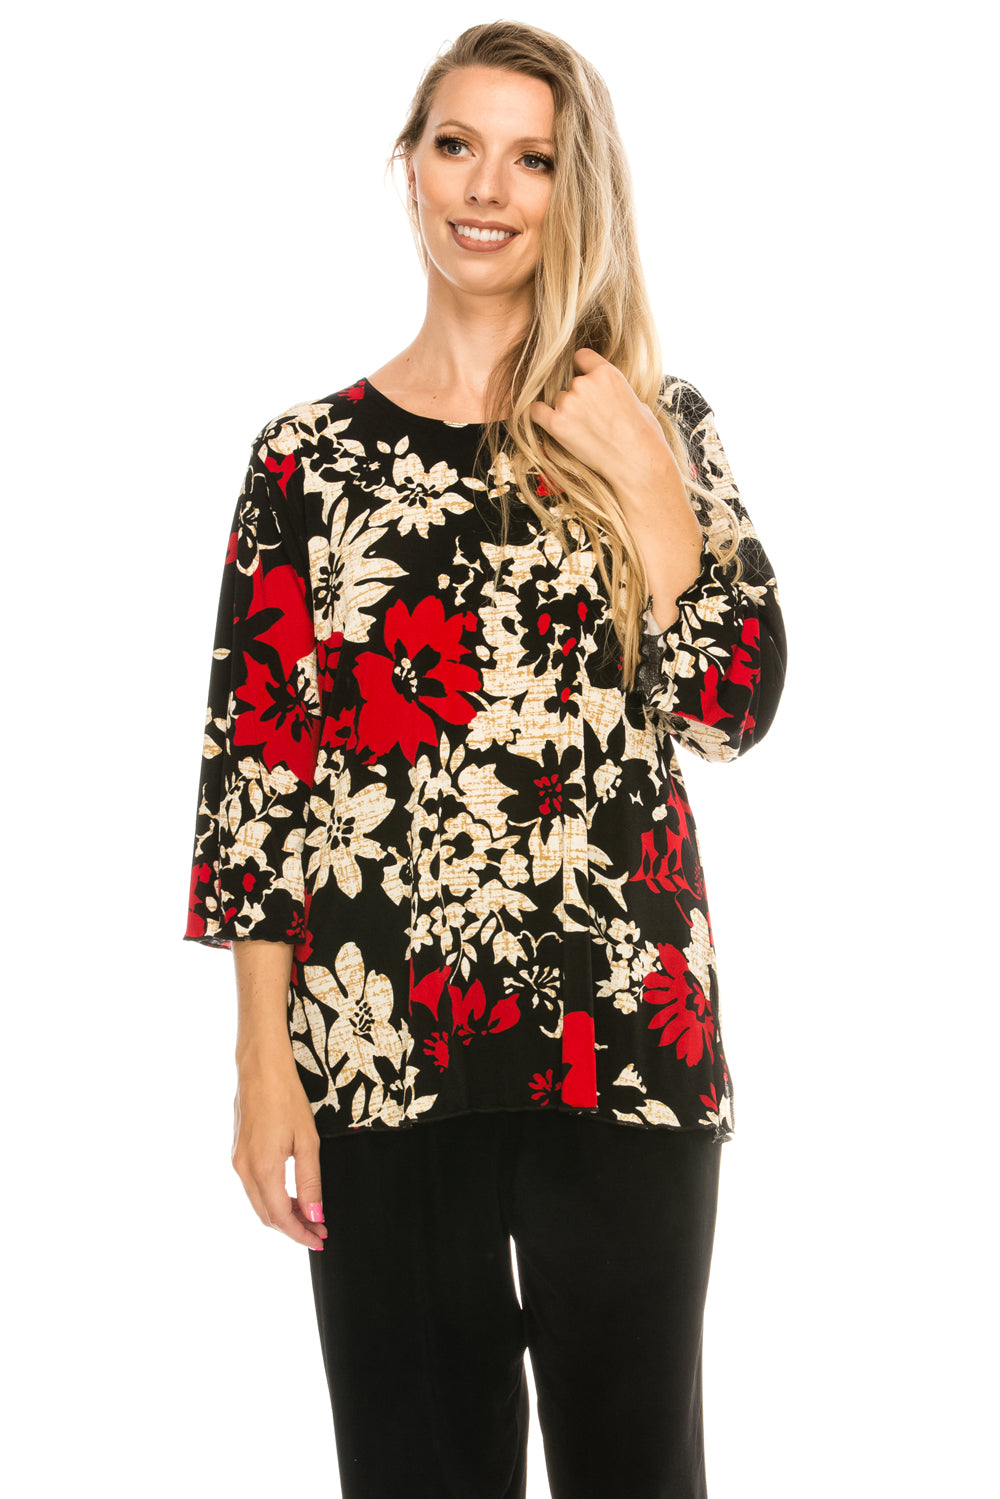 Jostar Women's Stretchy Merrow Top Three Quarter Print, 158BN-QP-W161 - Jostar Online